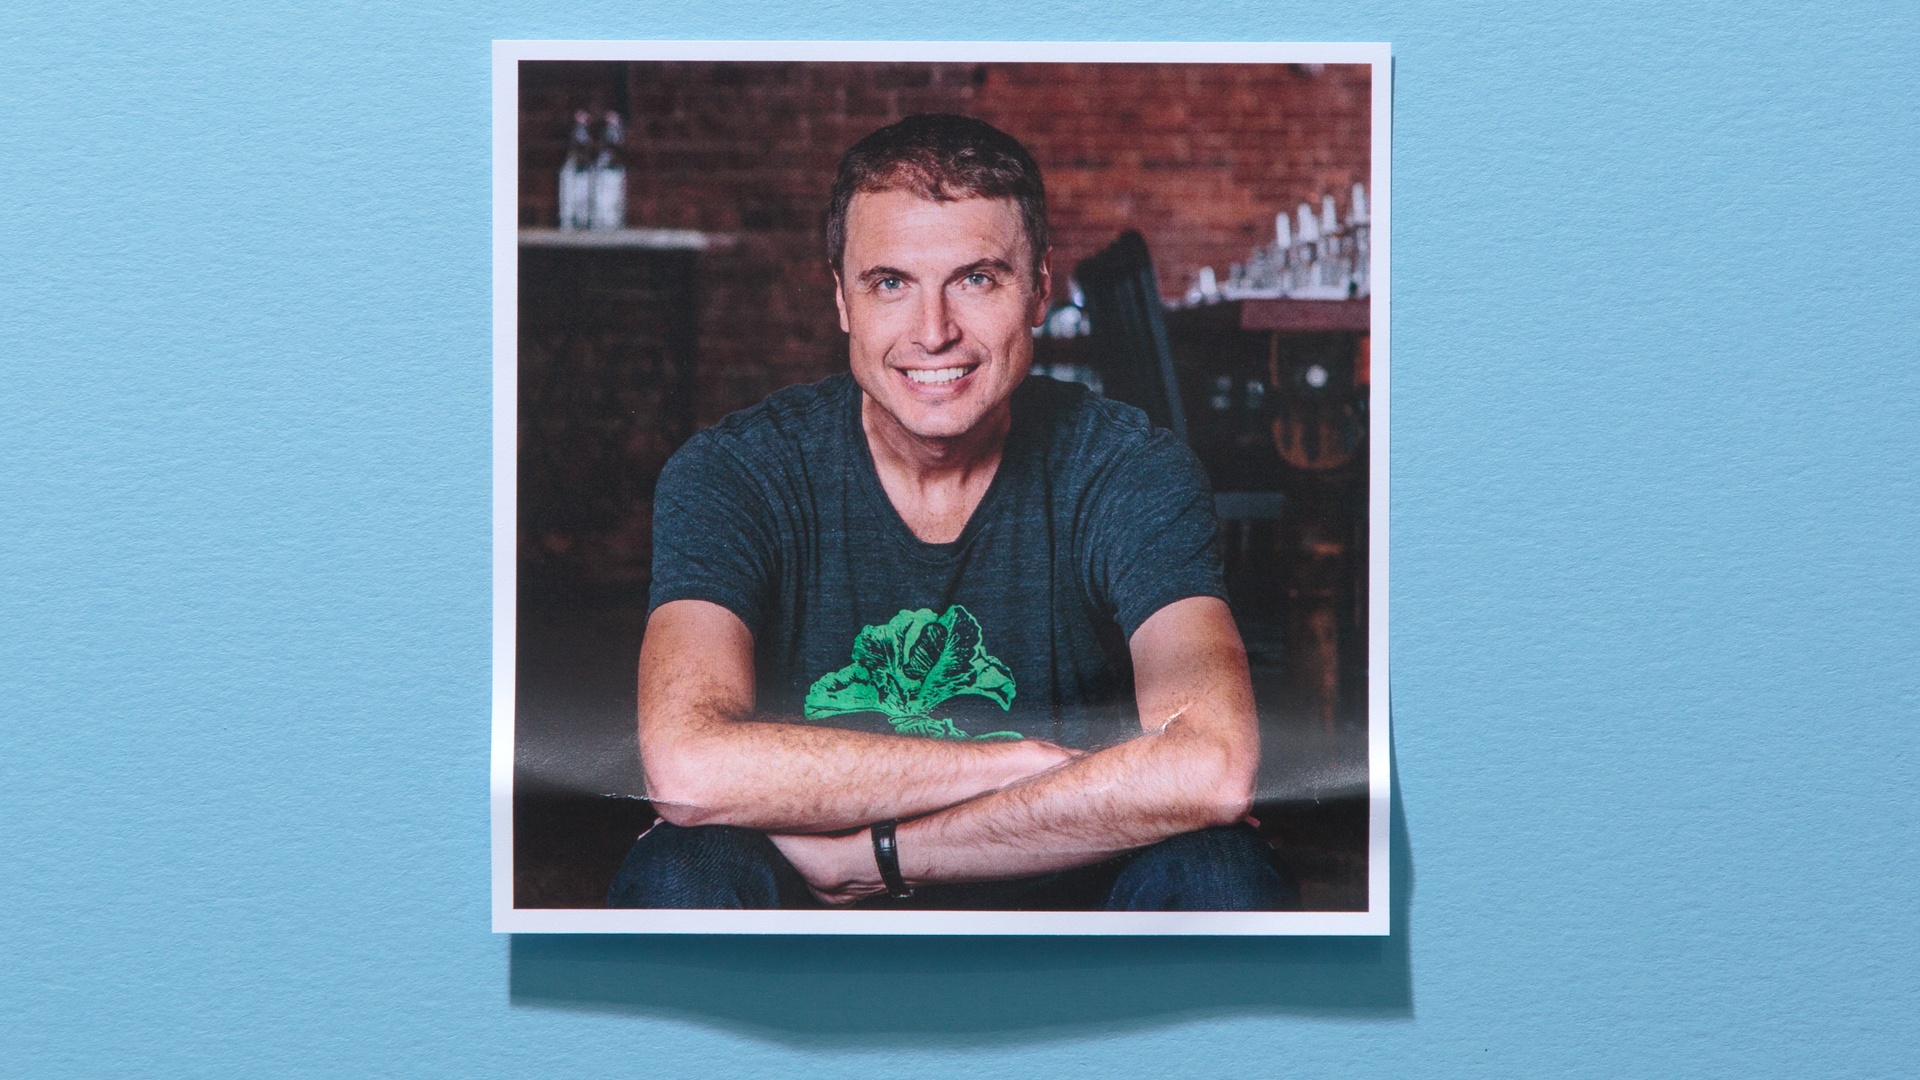 Meet Kimbal Musk, one of Fast Company's Most Creative People | Fast